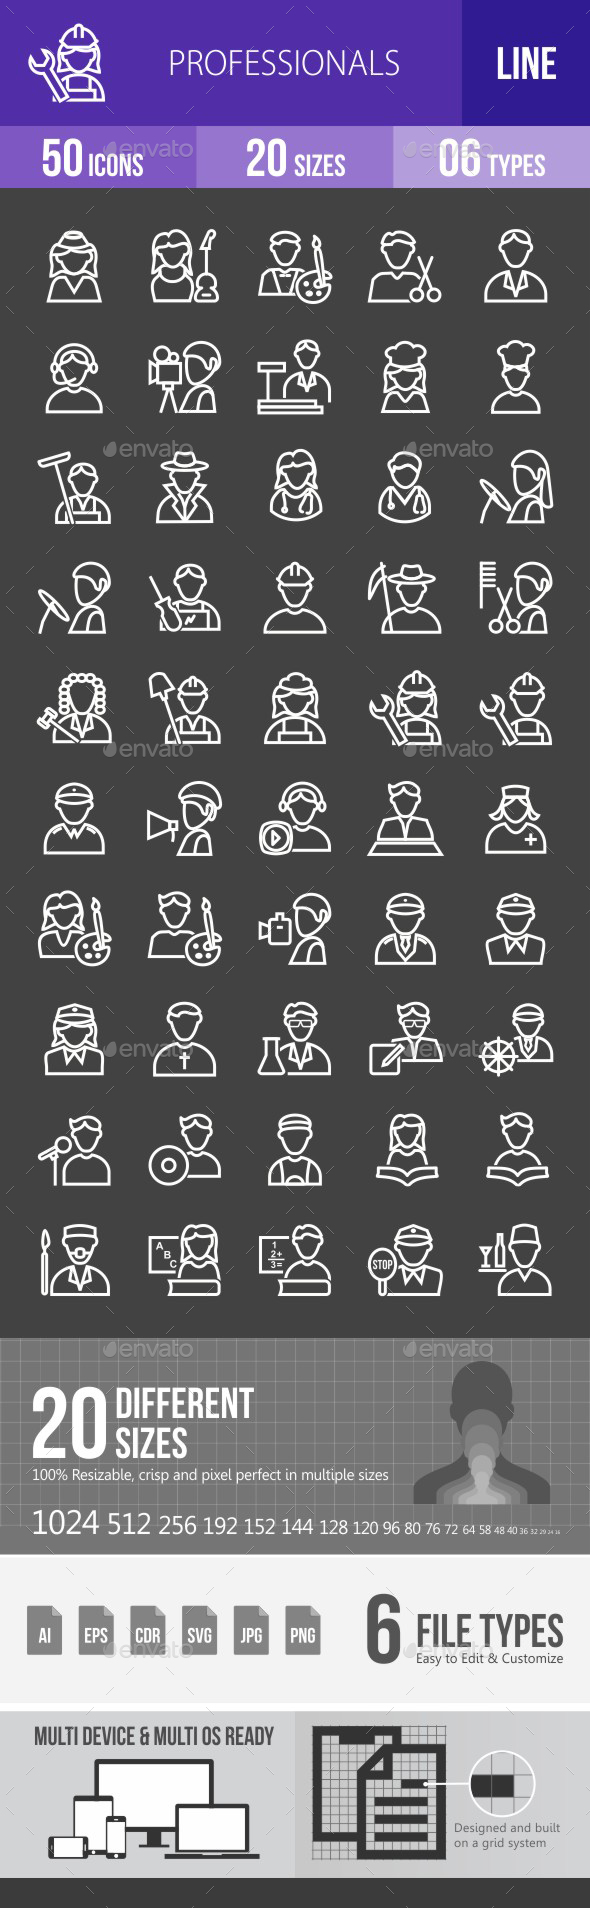 Professionals Line Inverted Icons - Icons